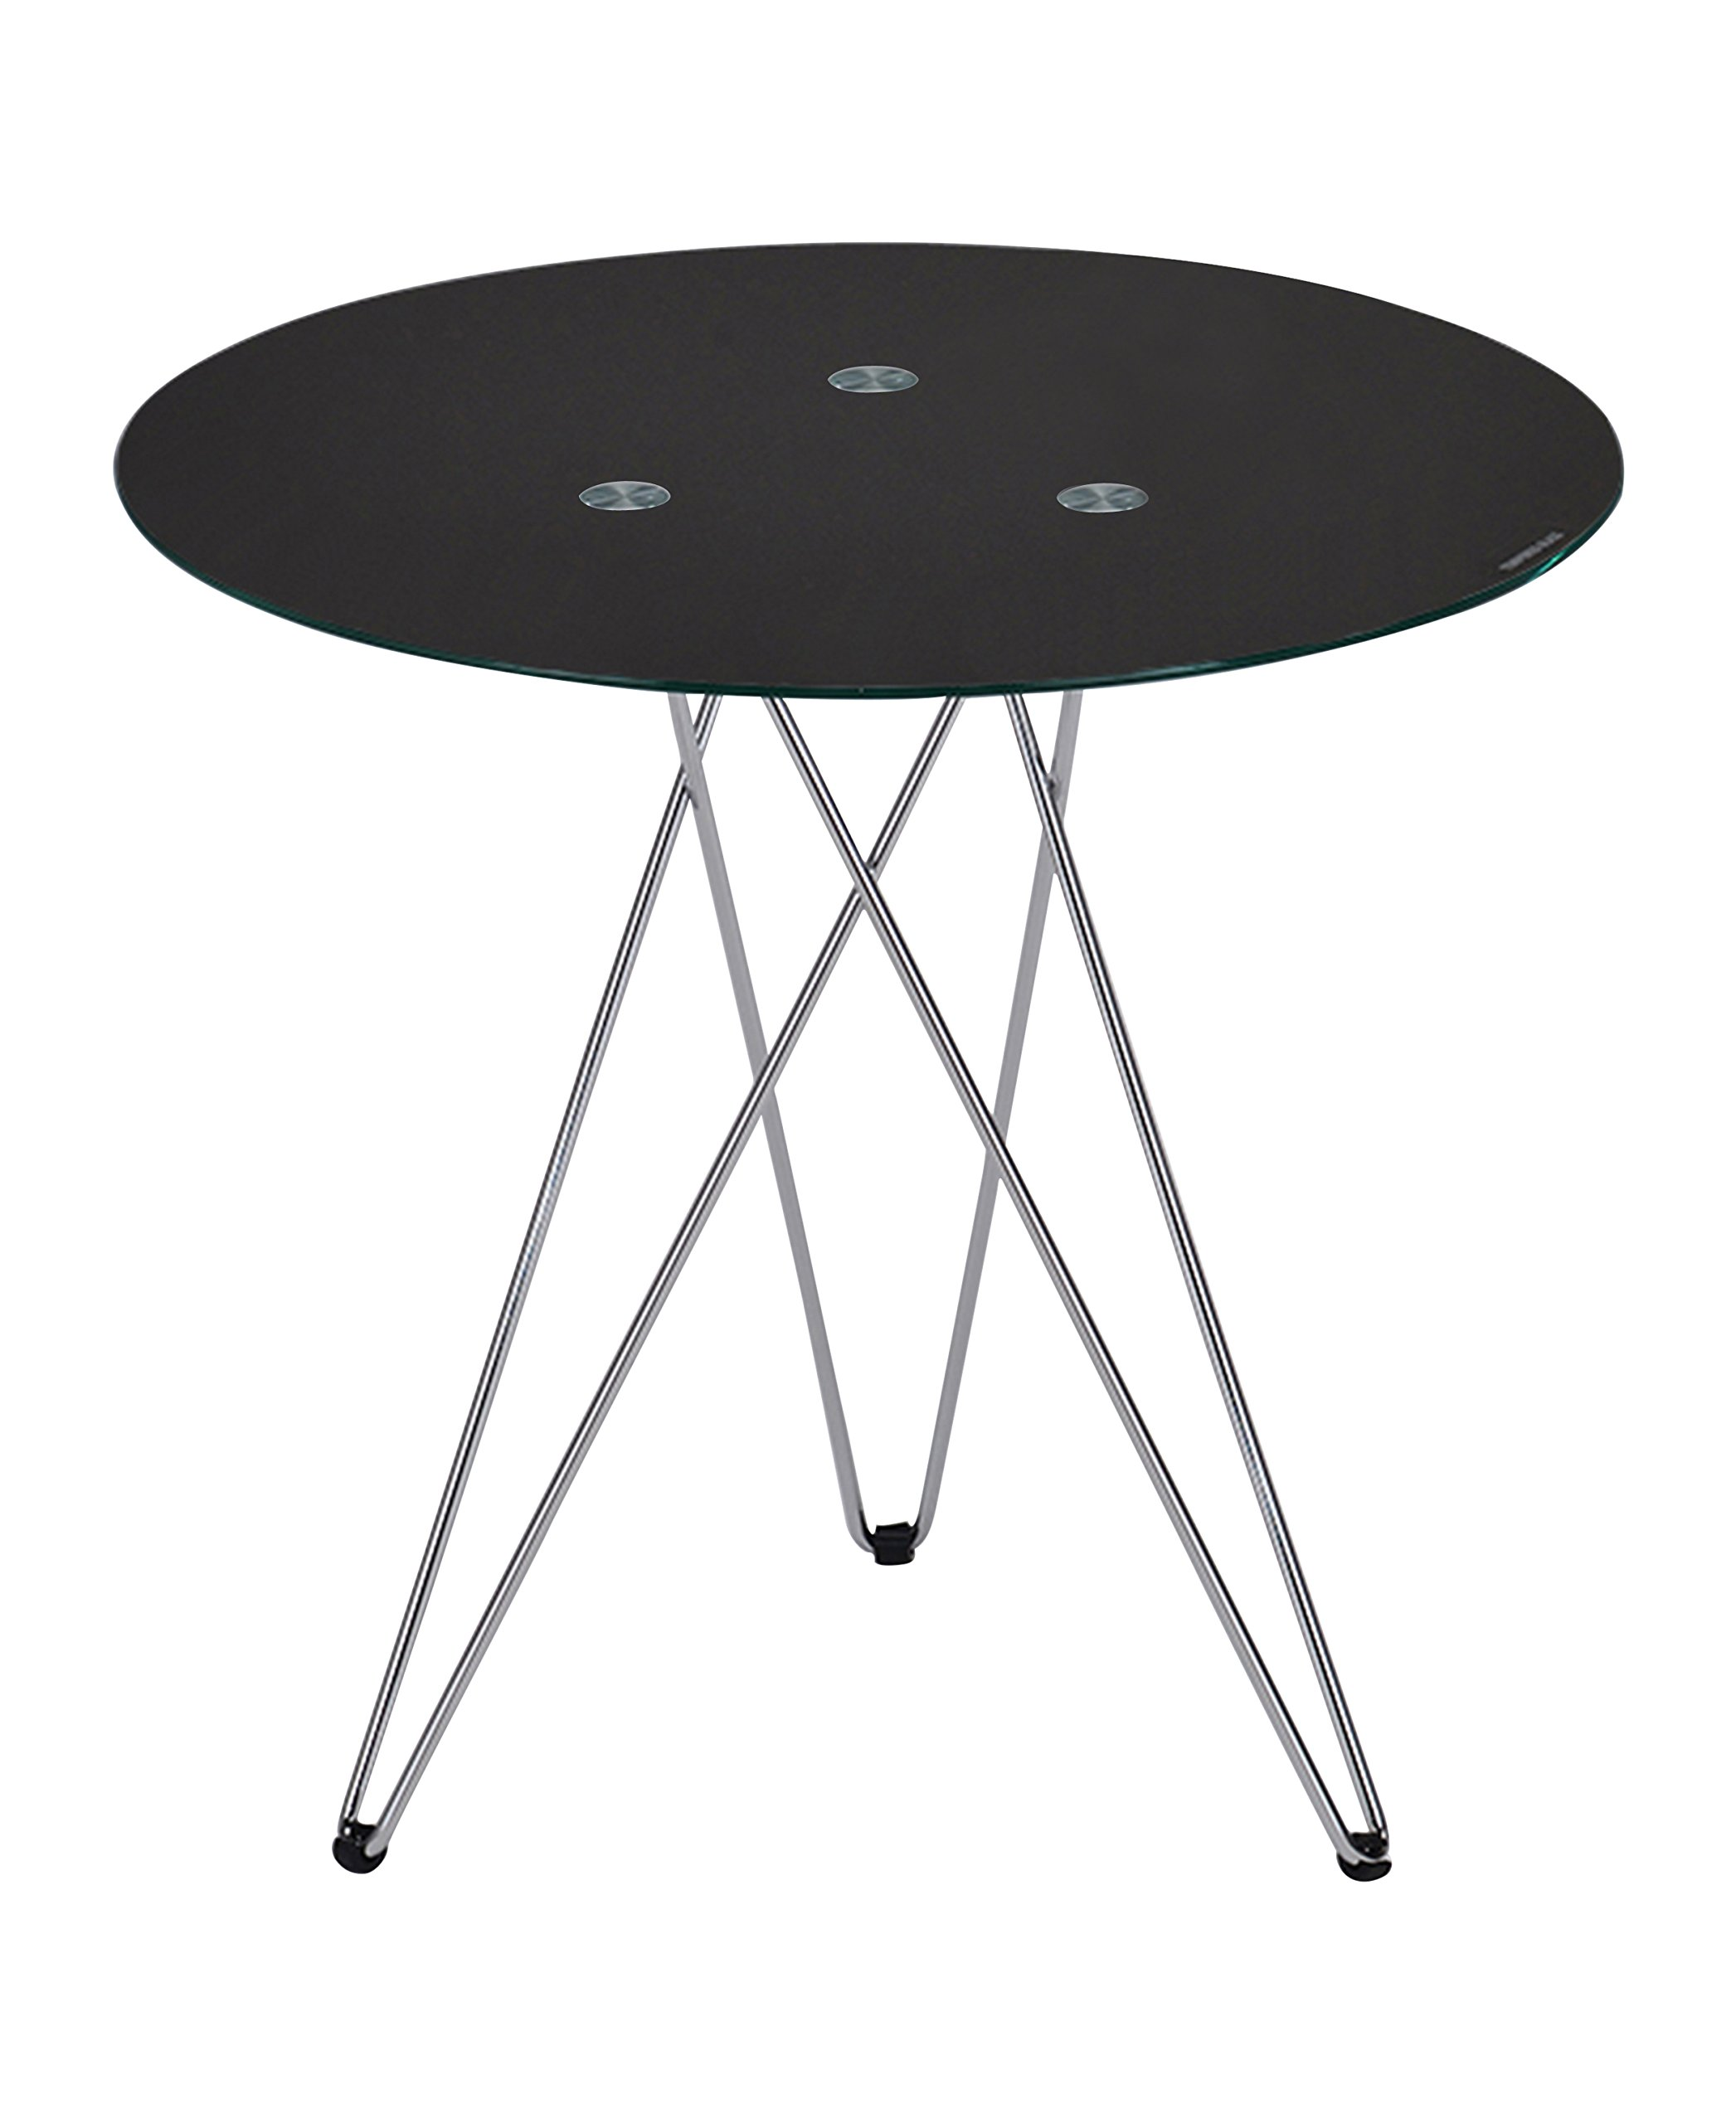 Kings Brand Leon Black Tempered Glass with Chrome Legs Round Side End Table - Kings Brand Leon Black Tempered Glass with Chrome Legs Round Side End Table. Add contemporary flare to any space when you decorate with this beautiful accent table. With a three-legged, chrome-finished metal stand and round glass tabletop, this table is an excellent complement to any room. - living-room-furniture, living-room, end-tables - 71HyPNkLI5L -